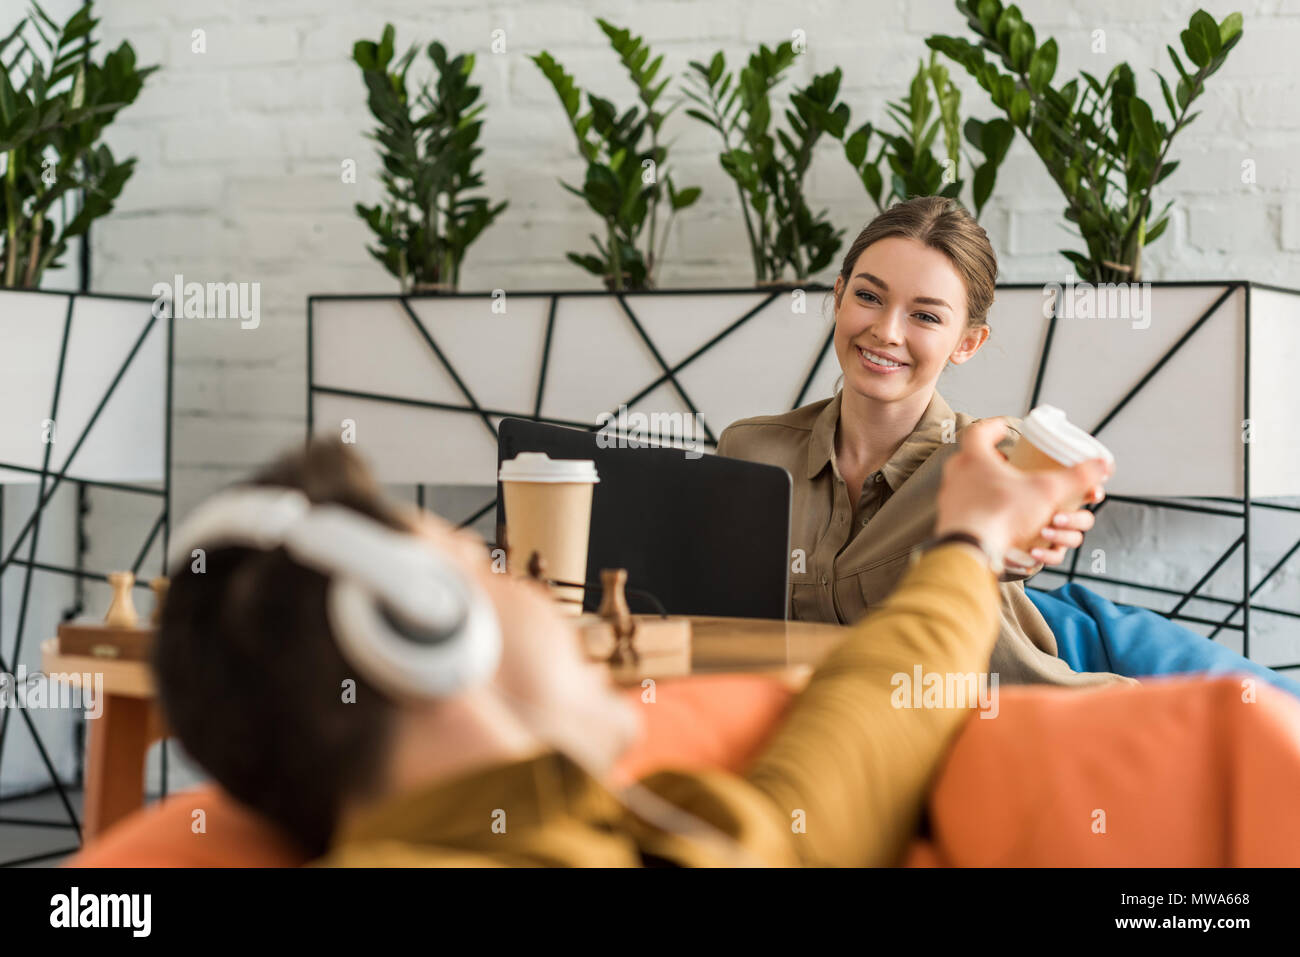 young man and woman drinking coffee and using devices while sitting in bean bags - Stock Image